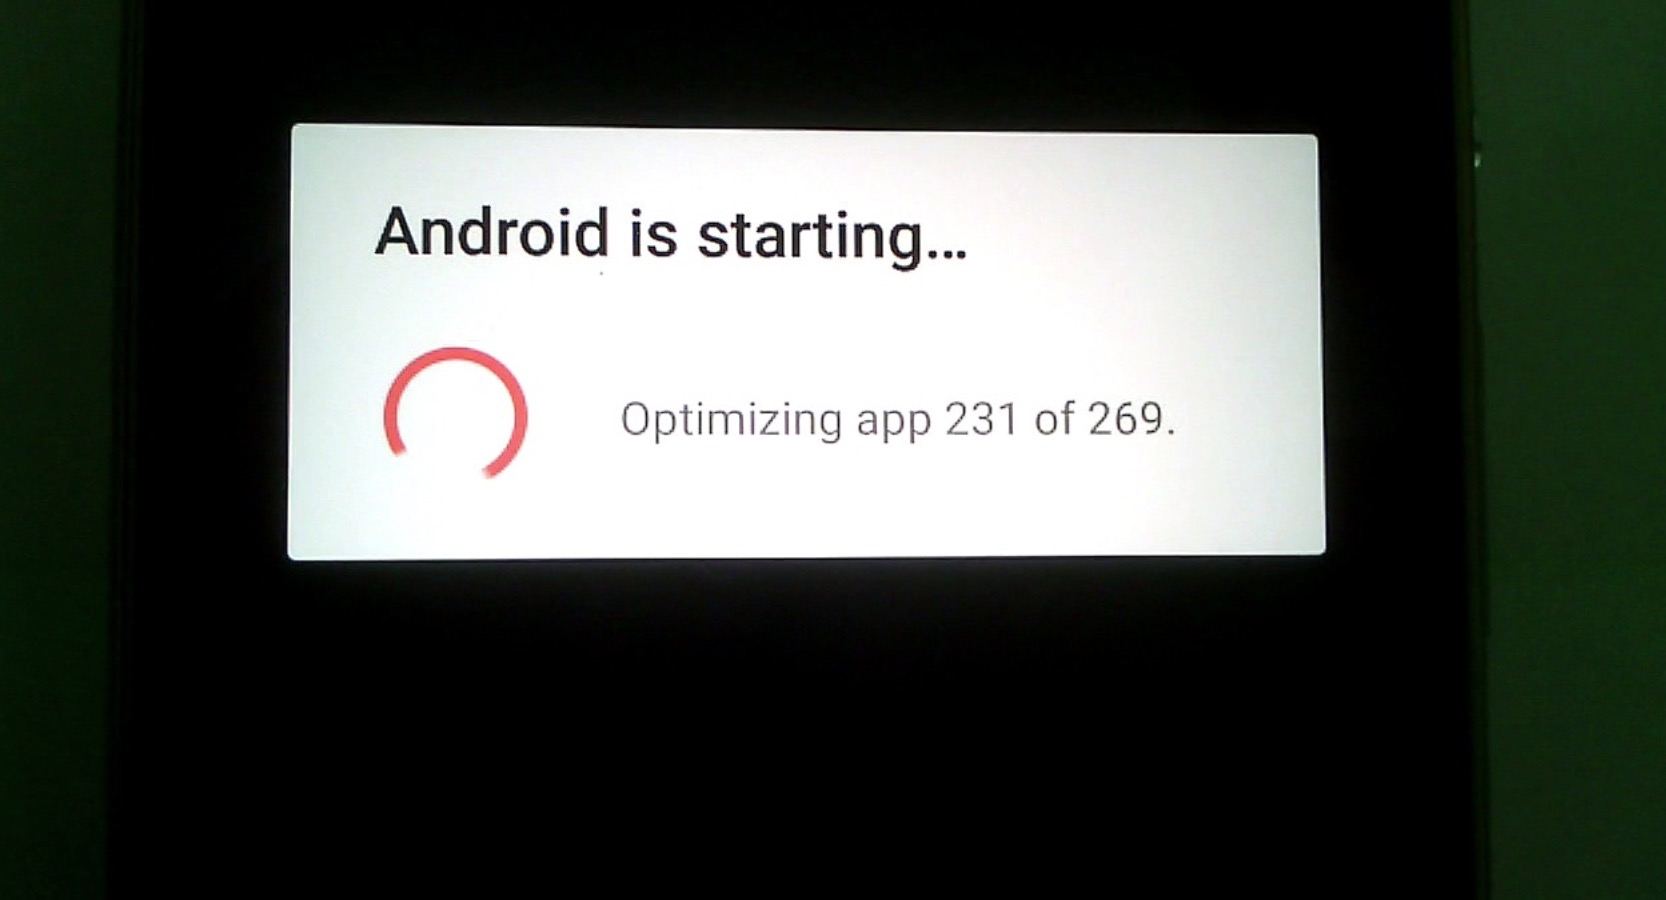 How to Fix Android is Starting Optimizing App